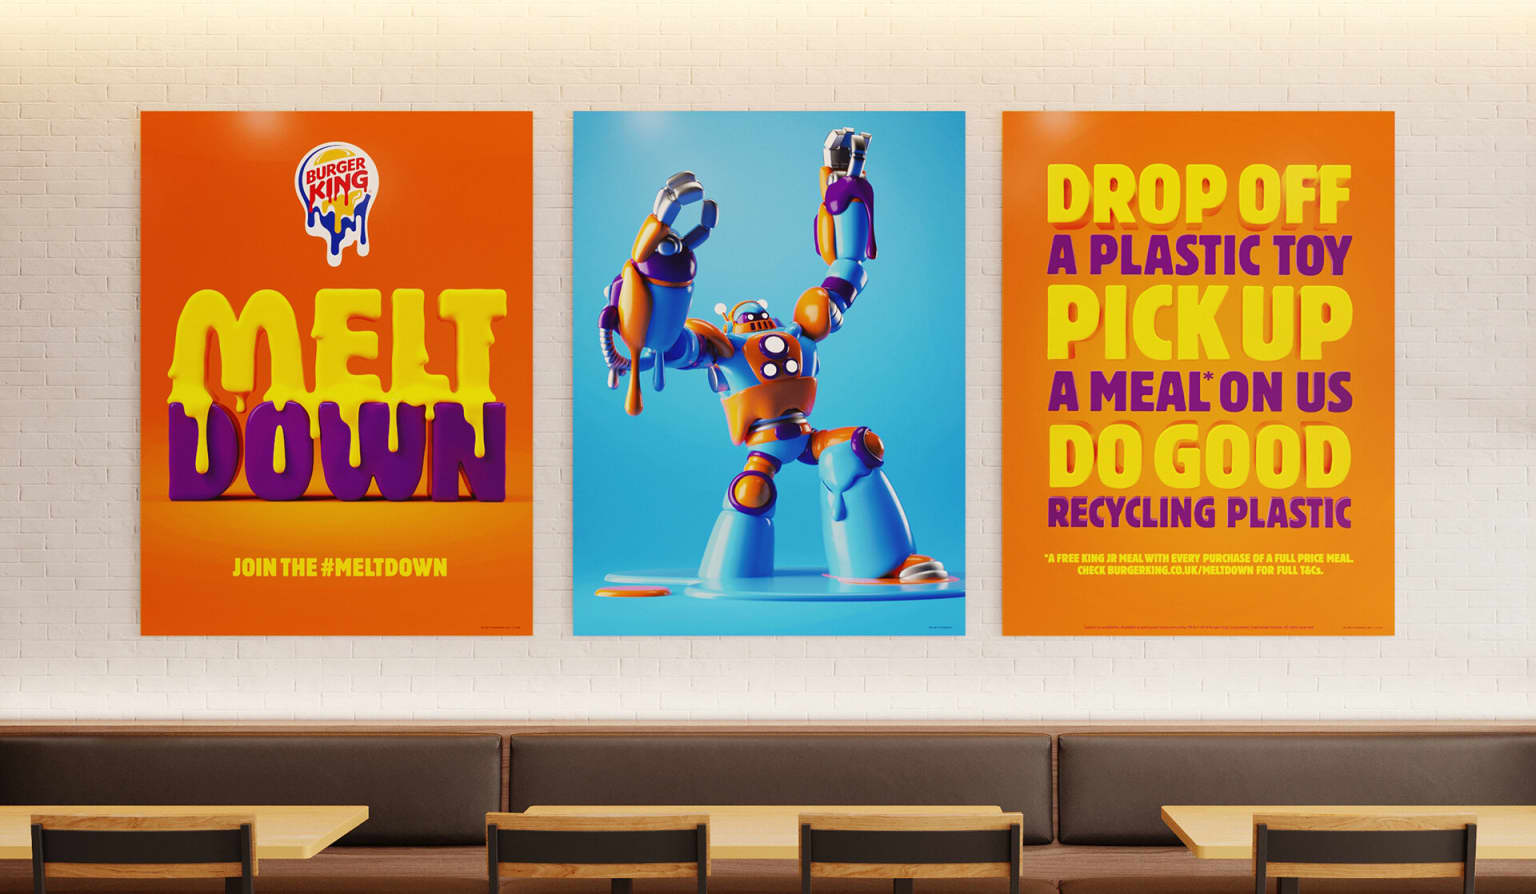 Meltdown — Burger King